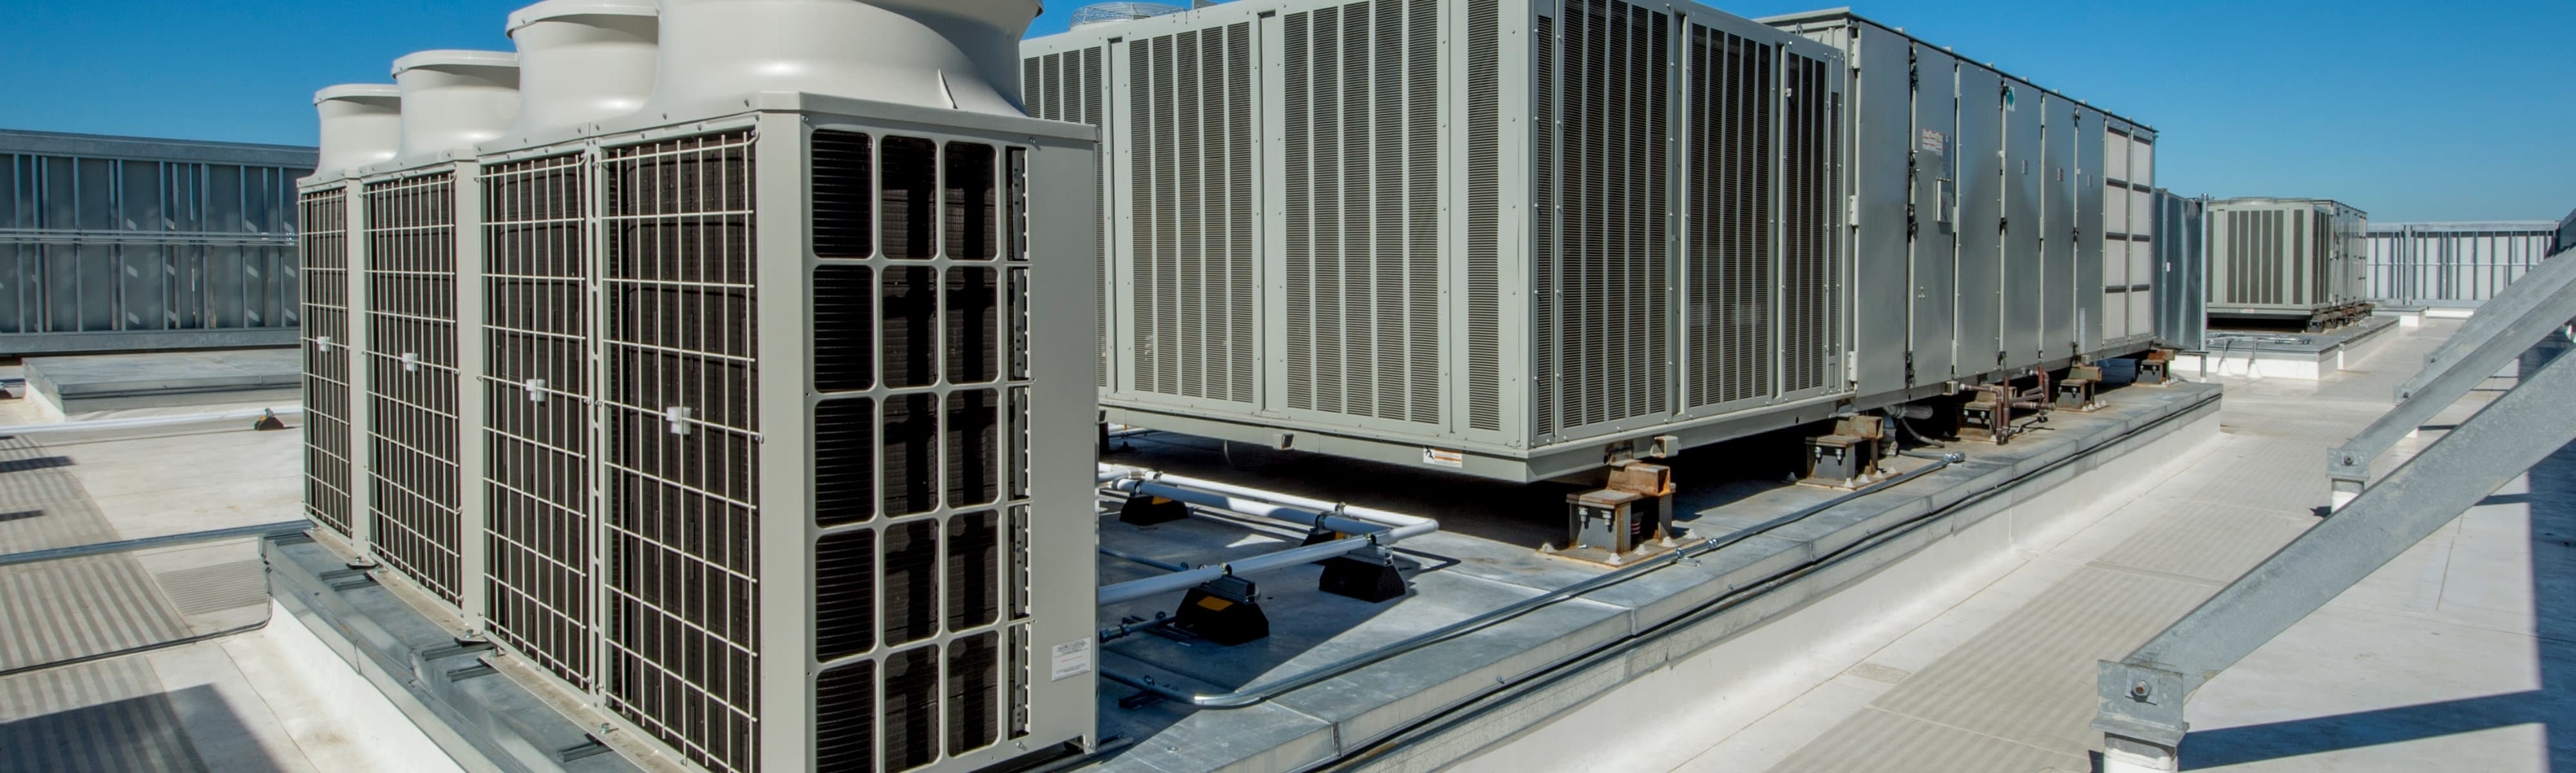 Commercial HVAC equipment on a roof.